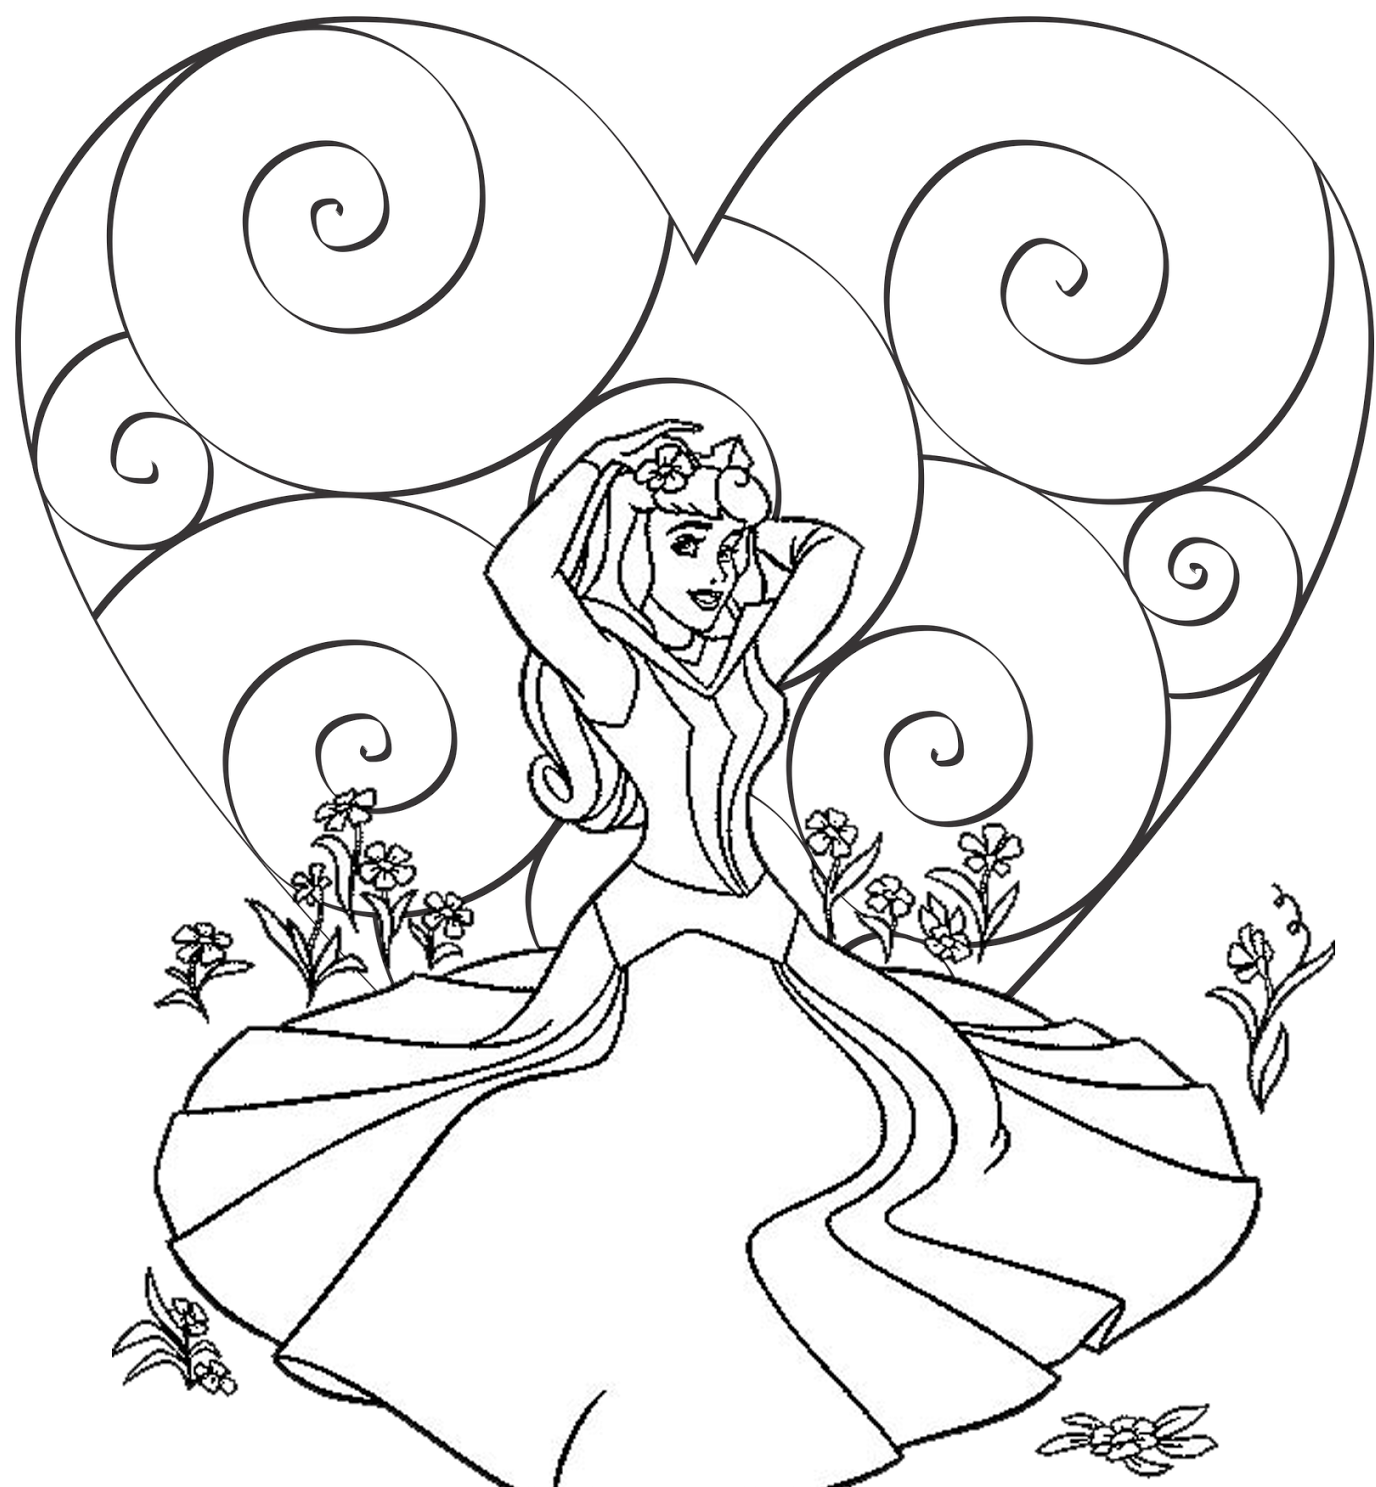 disney valentines day coloring pages valentine coloring pages disney mickey and minnie mouse valentines day pages coloring disney